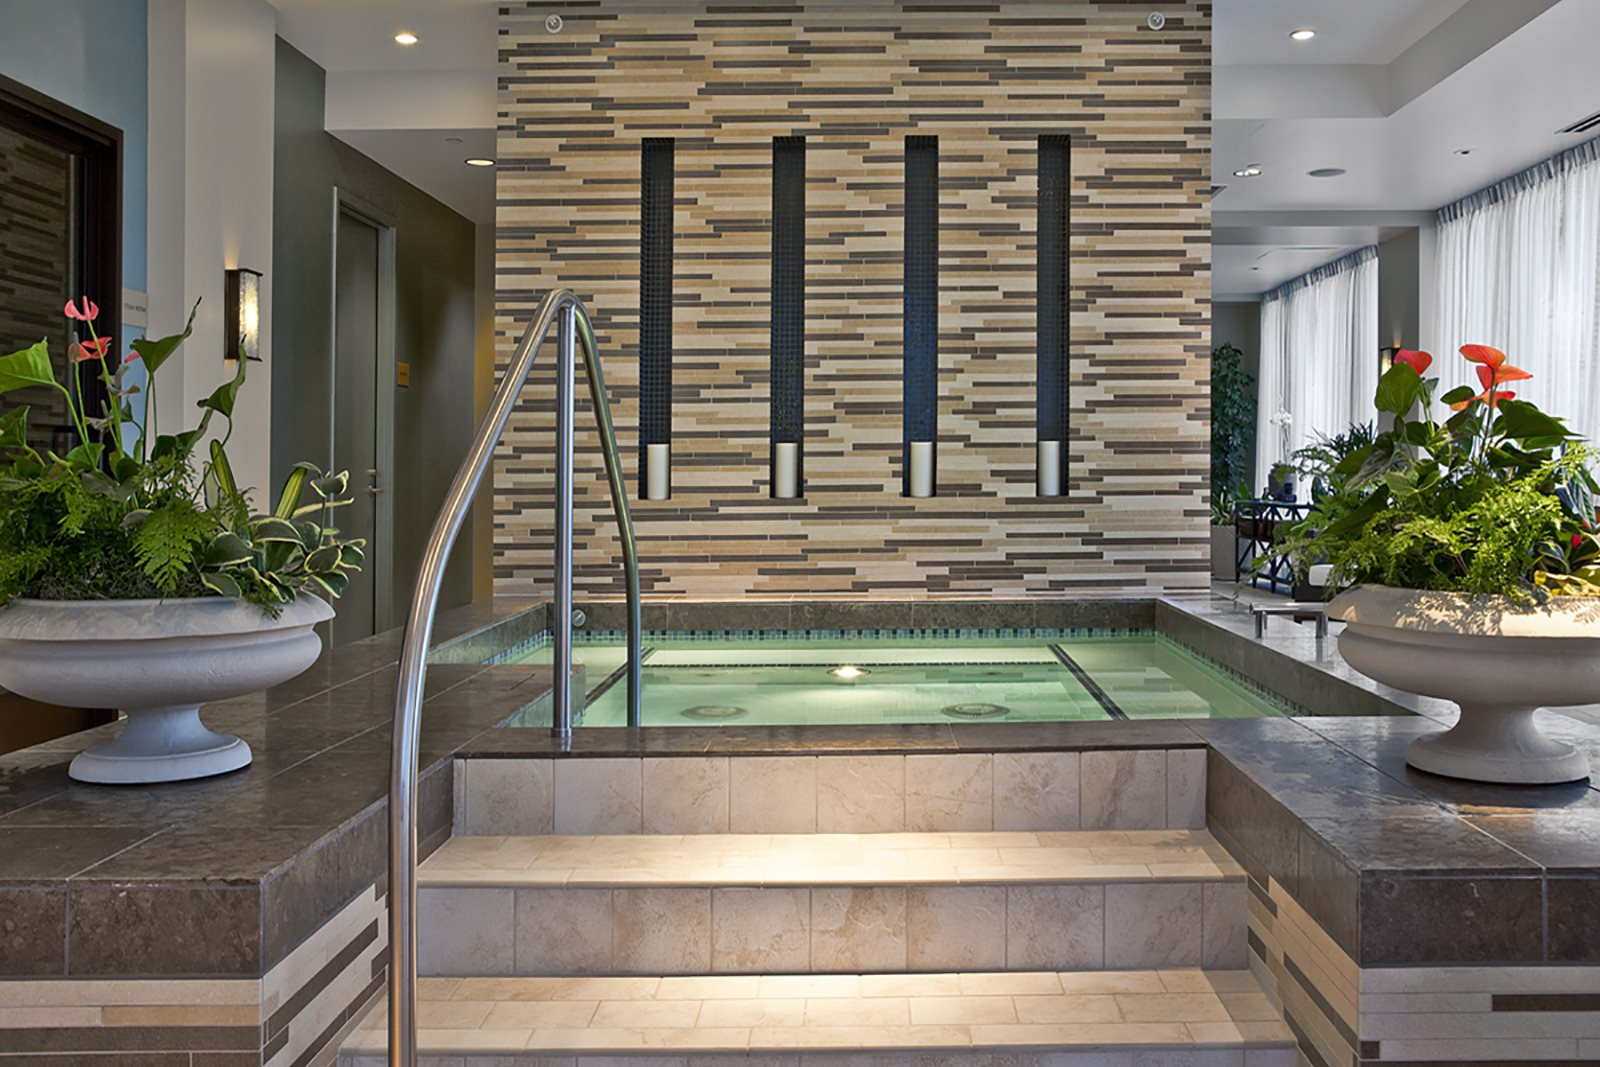 Signature Spa at The Bravern in Bellevue, WA